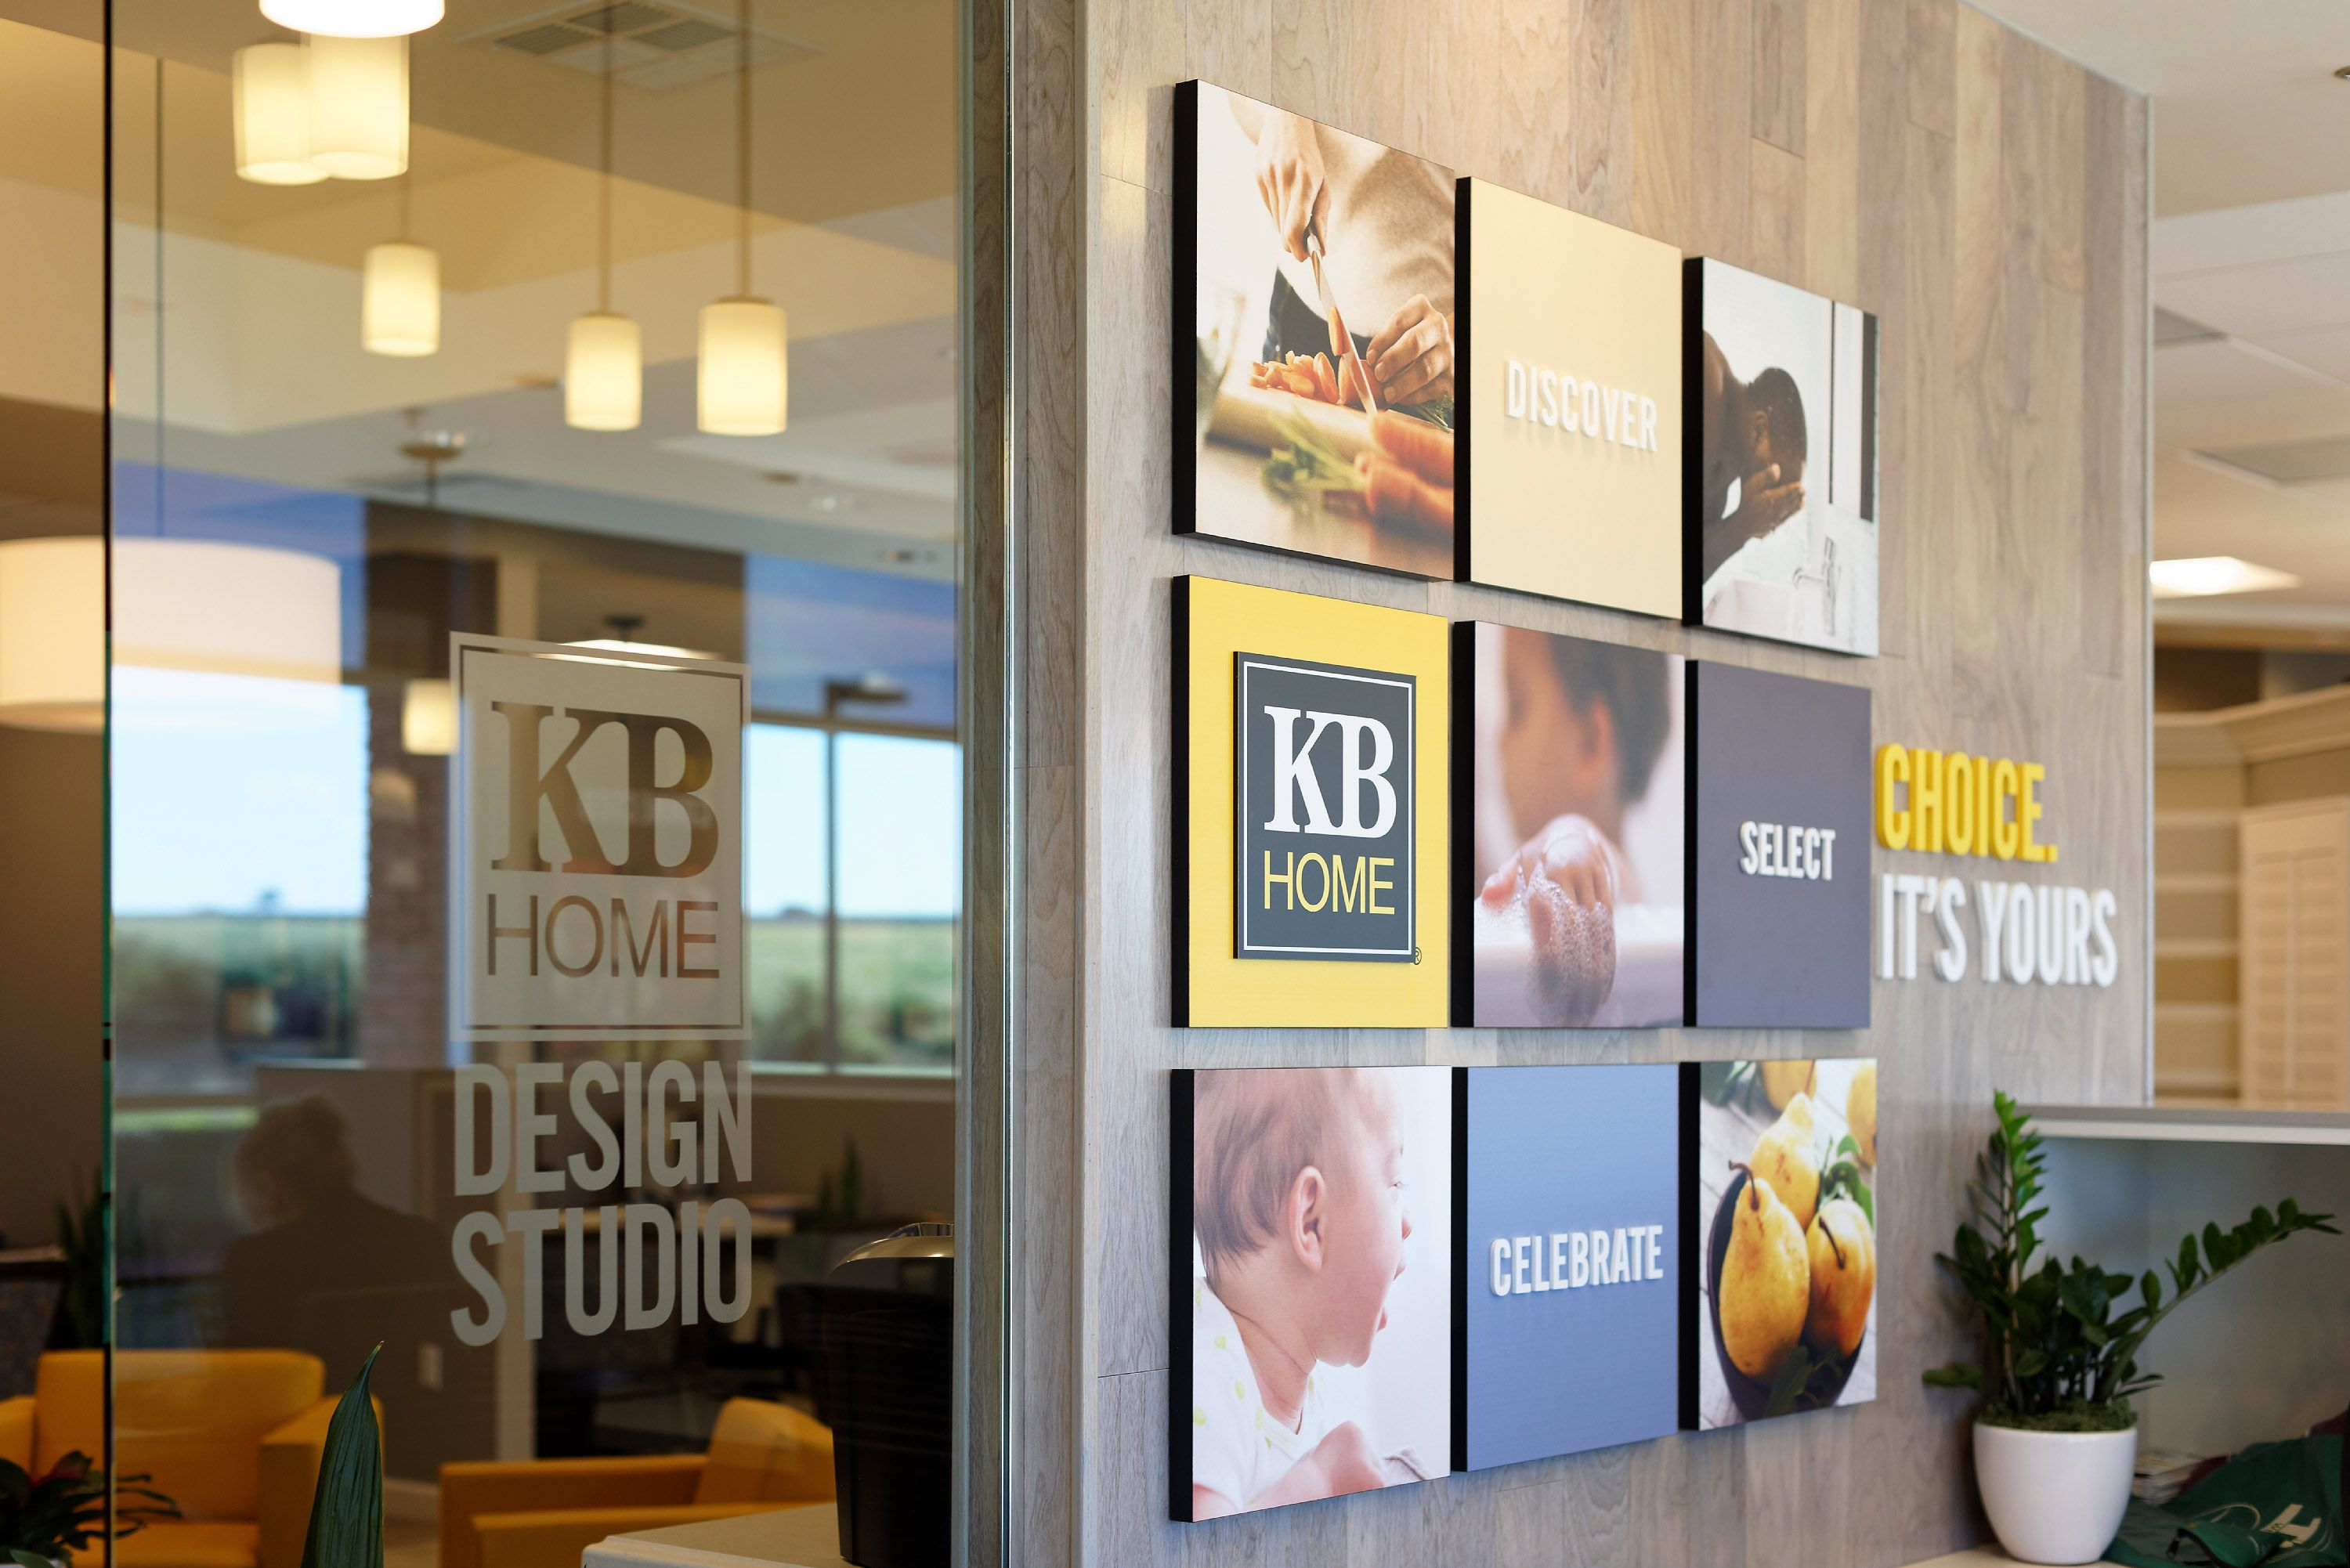 kb home design studio frosty vinyl and custom displays - Kb Homes Design Studio